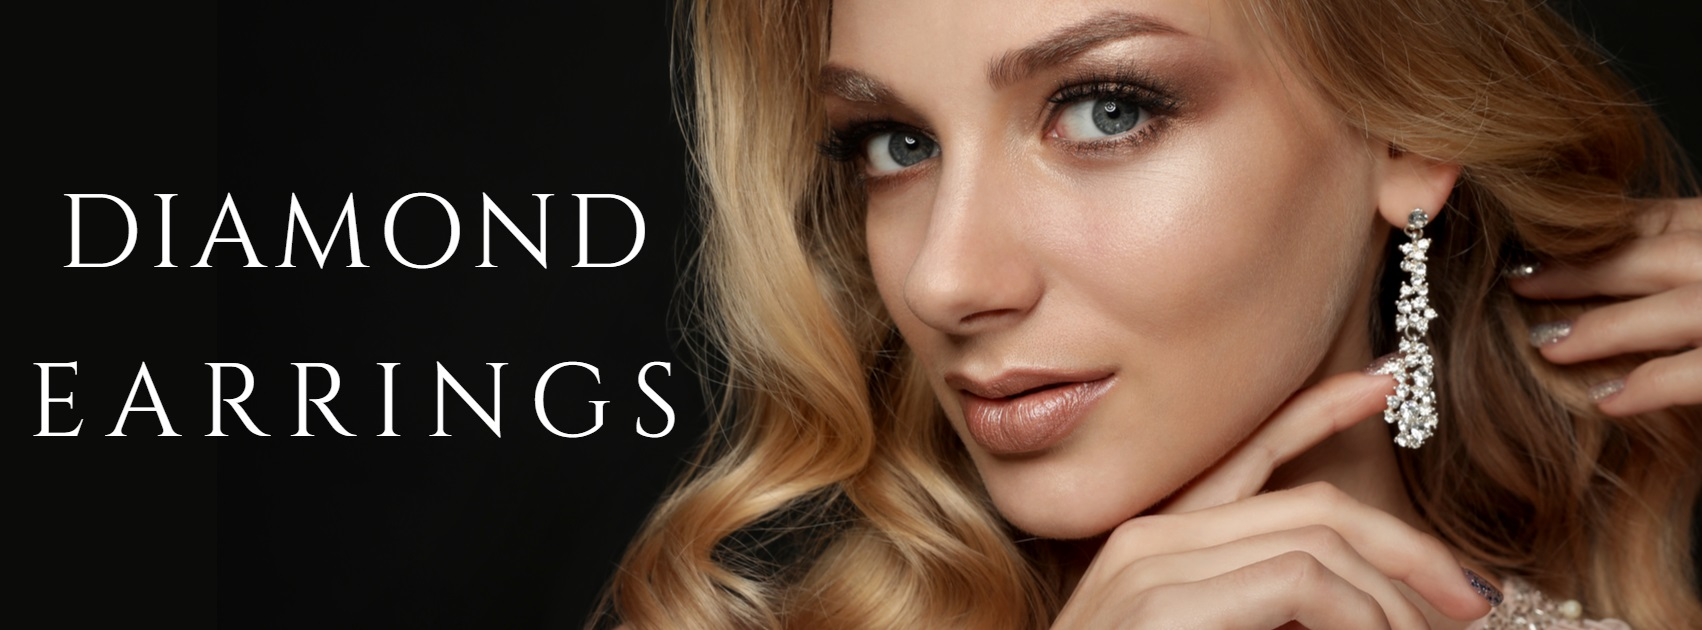 Shop Diamond Earrings - Antwerp Diamonds of Buckhead Georgia